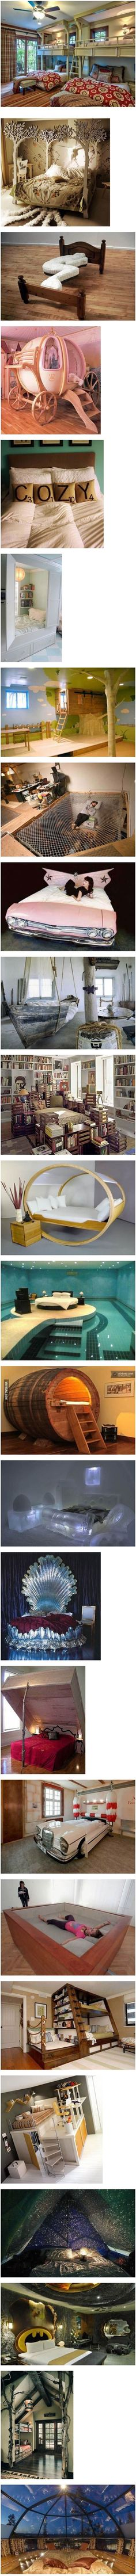 Some interesting beds and bedrooms